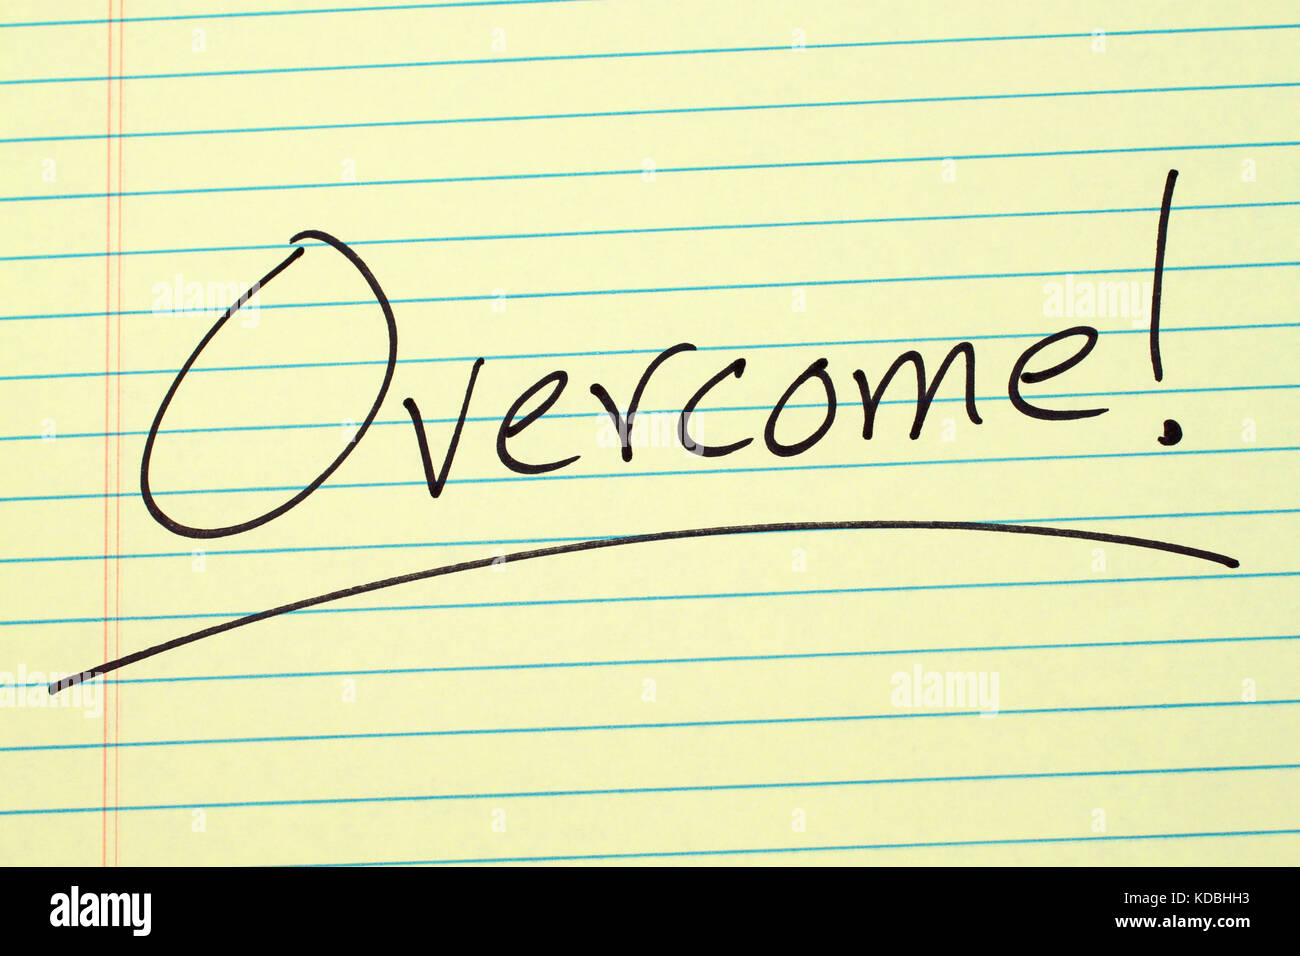 The word 'Overcome!' underlined on a yellow legal pad - Stock Image